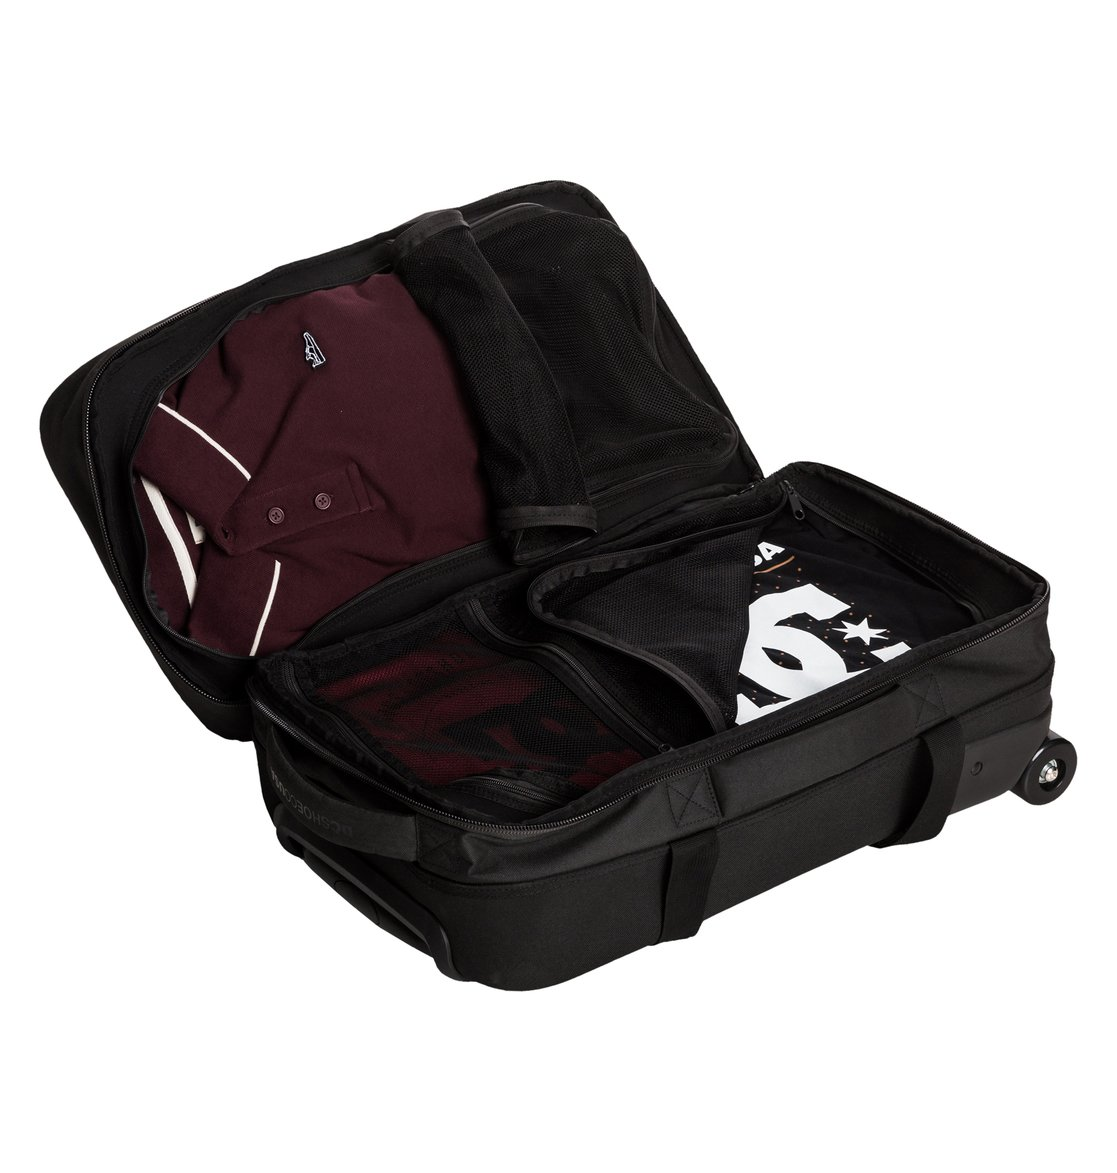 perfect for max budapest allowance cabin wizz bag air luggage cabins free